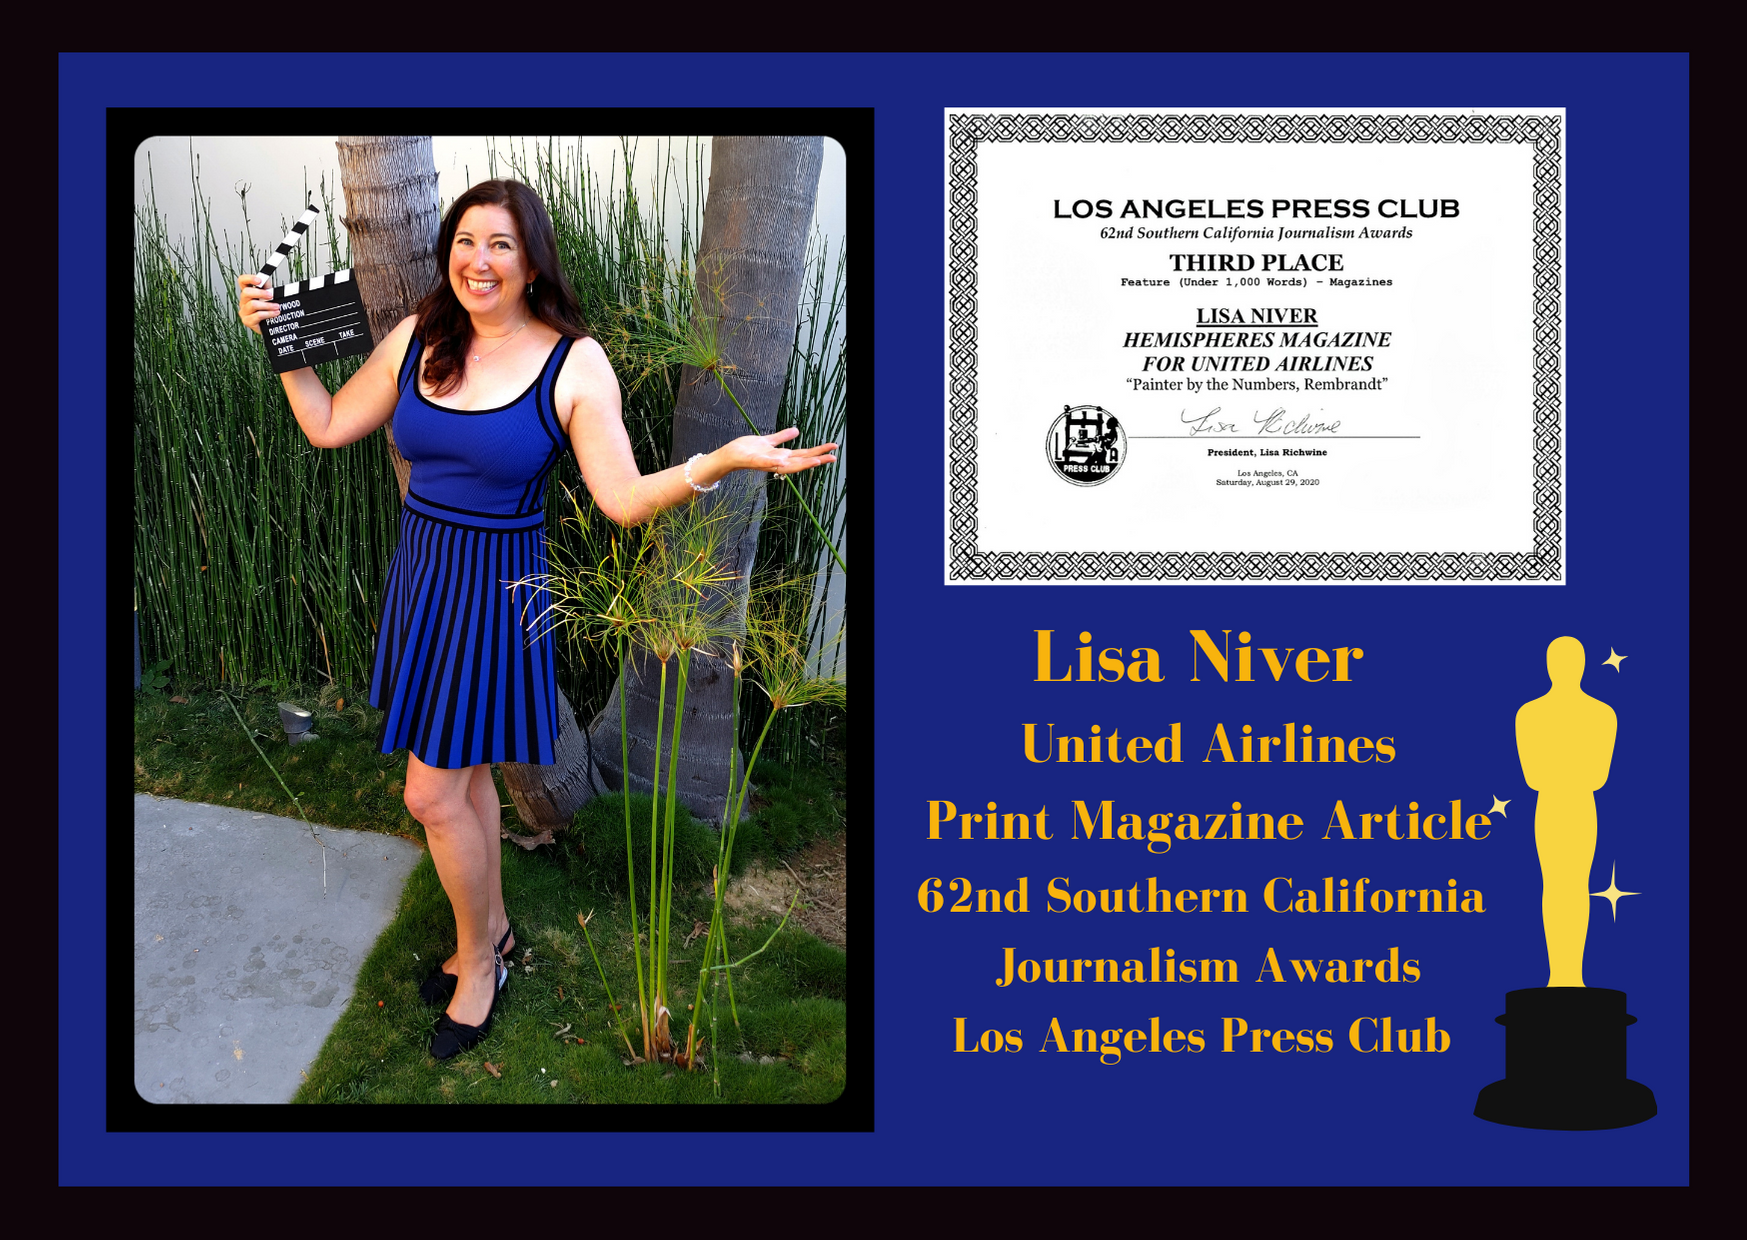 Lisa Niver winner 62nd Southern California Journalism Awards